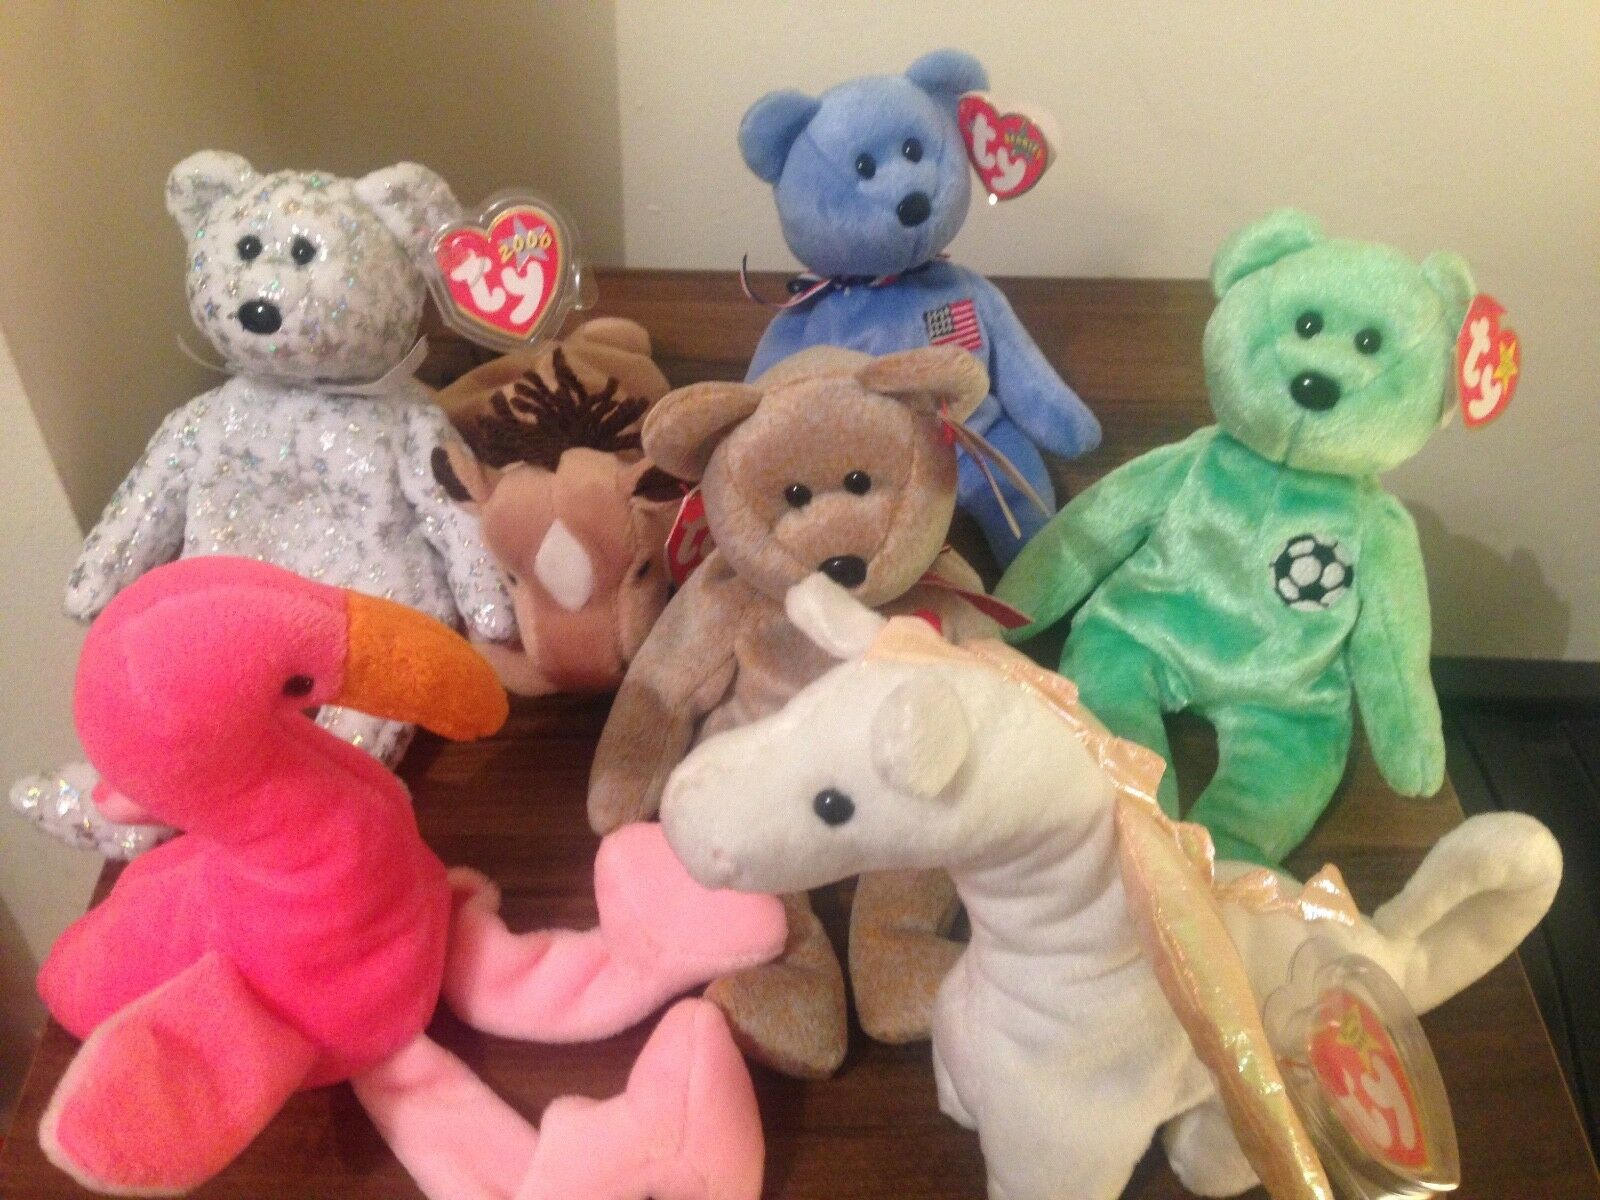 7 Original beanie babies PVC pellets. Excelllent condition with tags.